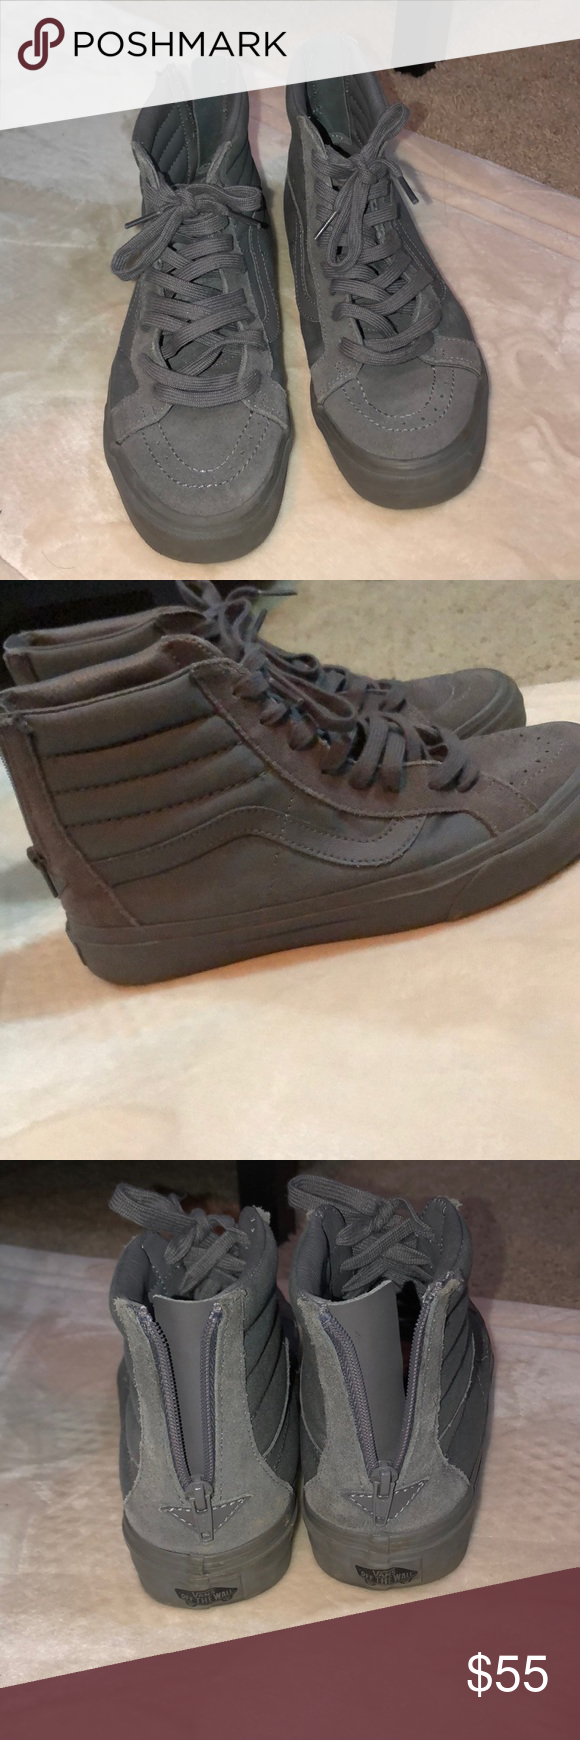 dfd2f1197d High top vans All grey high top vans with back zipper and shoe laces. In  great condition. Vans Shoes Sneakers